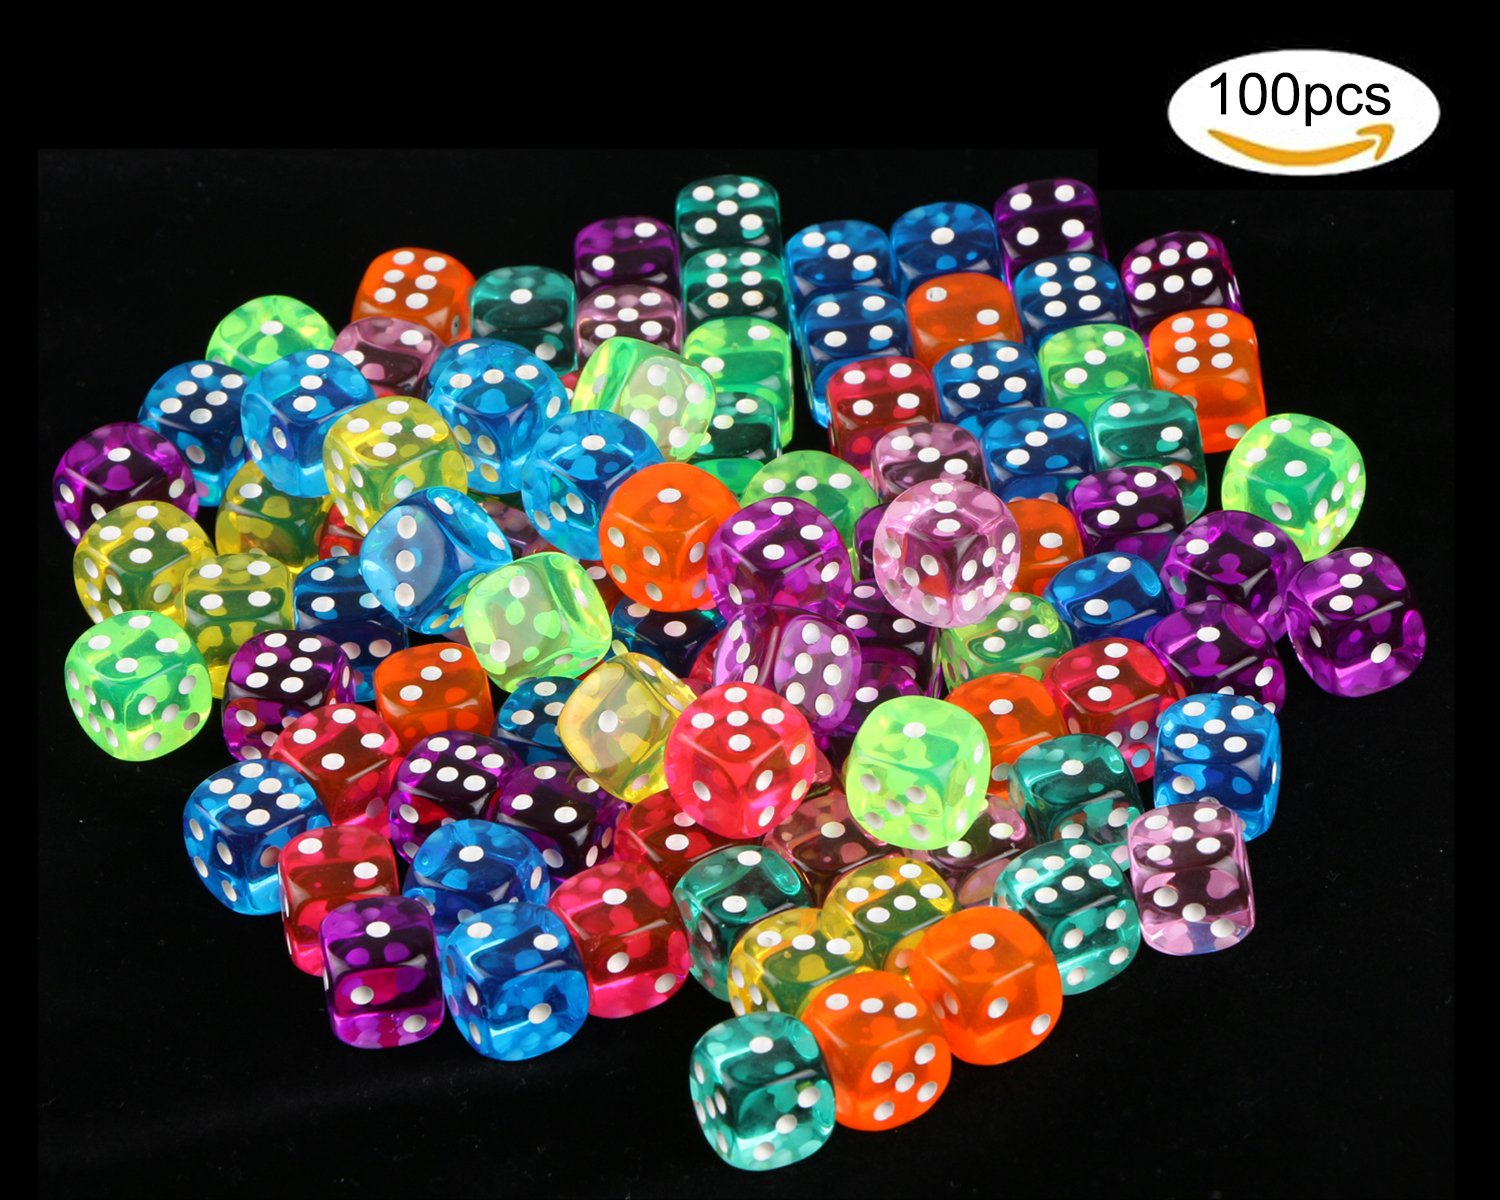 100 Pcs Translucent Colors 6-Sided Games Dice Set, 14 mm Round Corner Dice for Playing Games, Like Board Games, Dice Games, Math Games, Party Favors, Toy Gifts or Teaching Kids Math